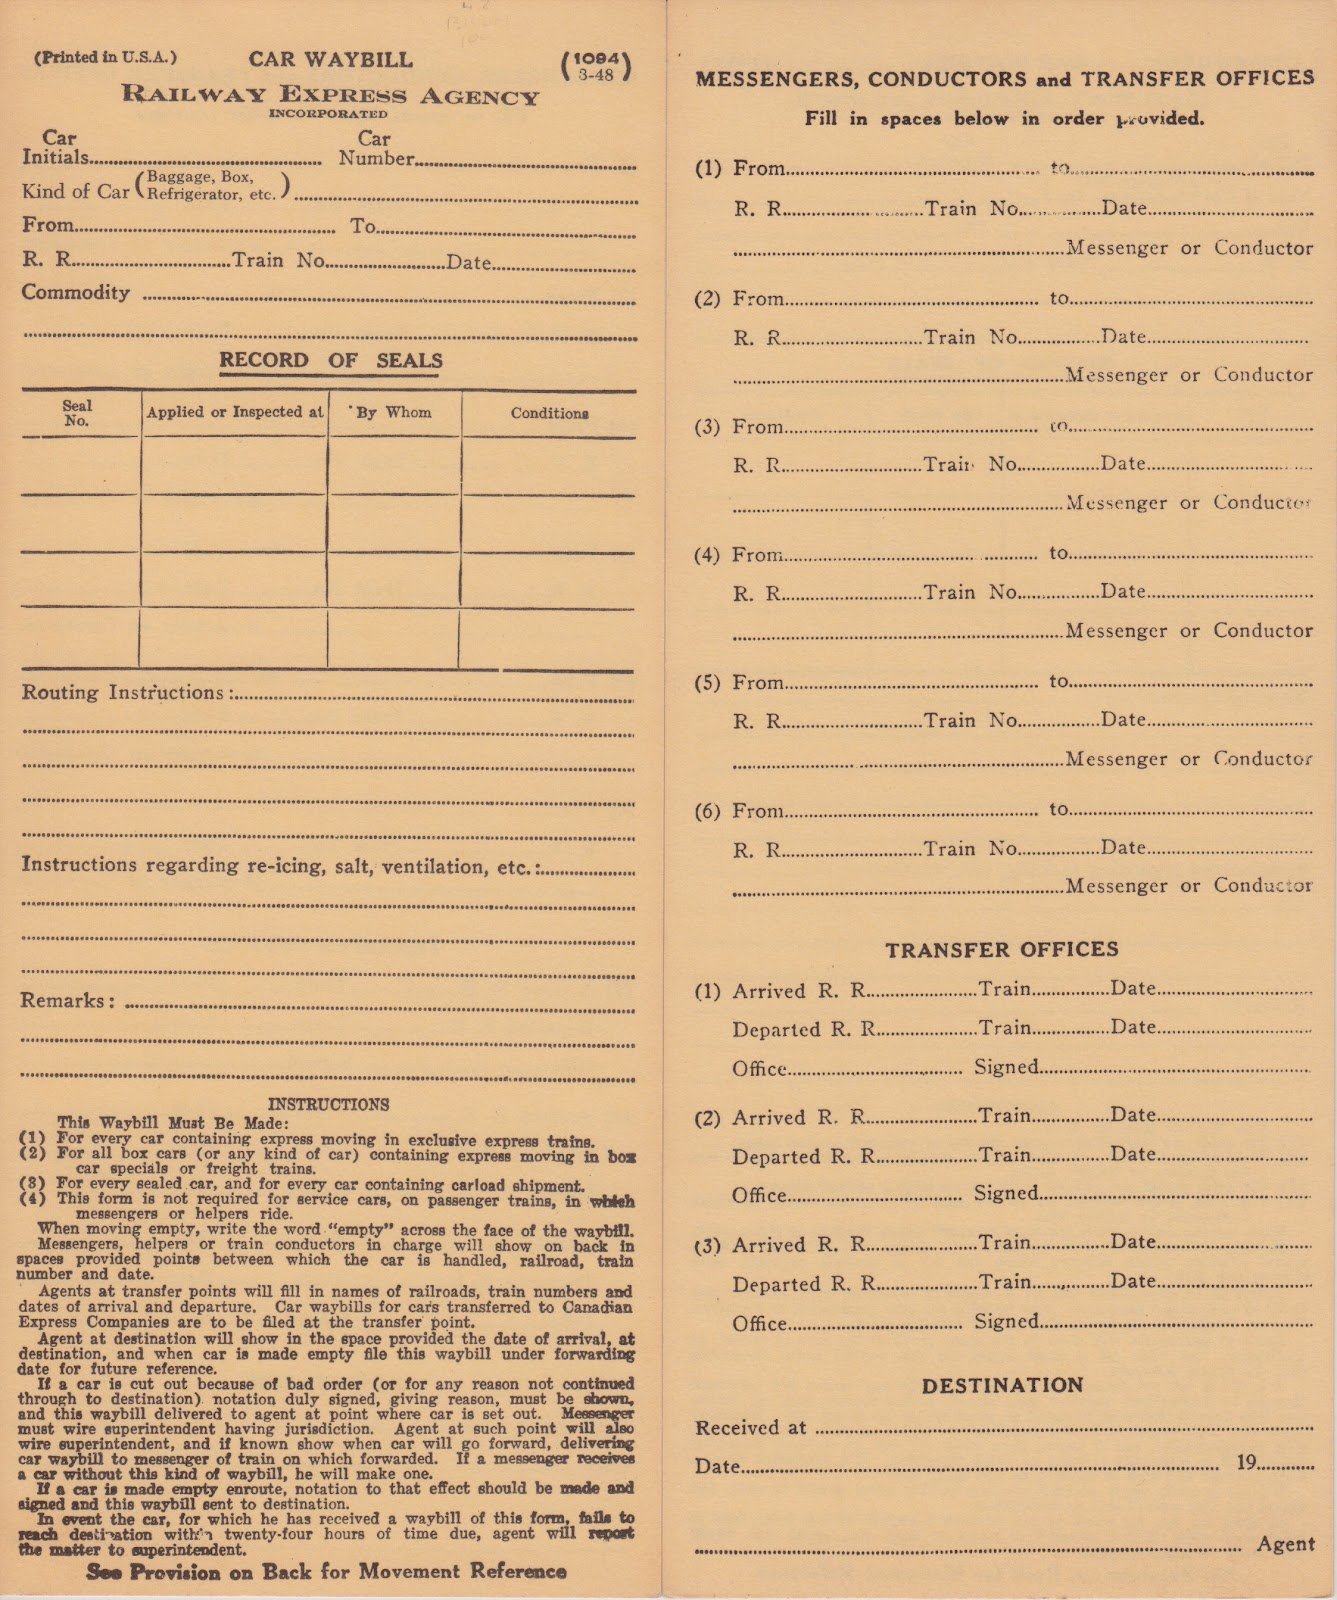 a railway express waybill modeling the cnw in milwaukee  i always thought of rea express traffic as moving in rea express reefers in passenger trains but the instructions on this form clearly imply that traffic